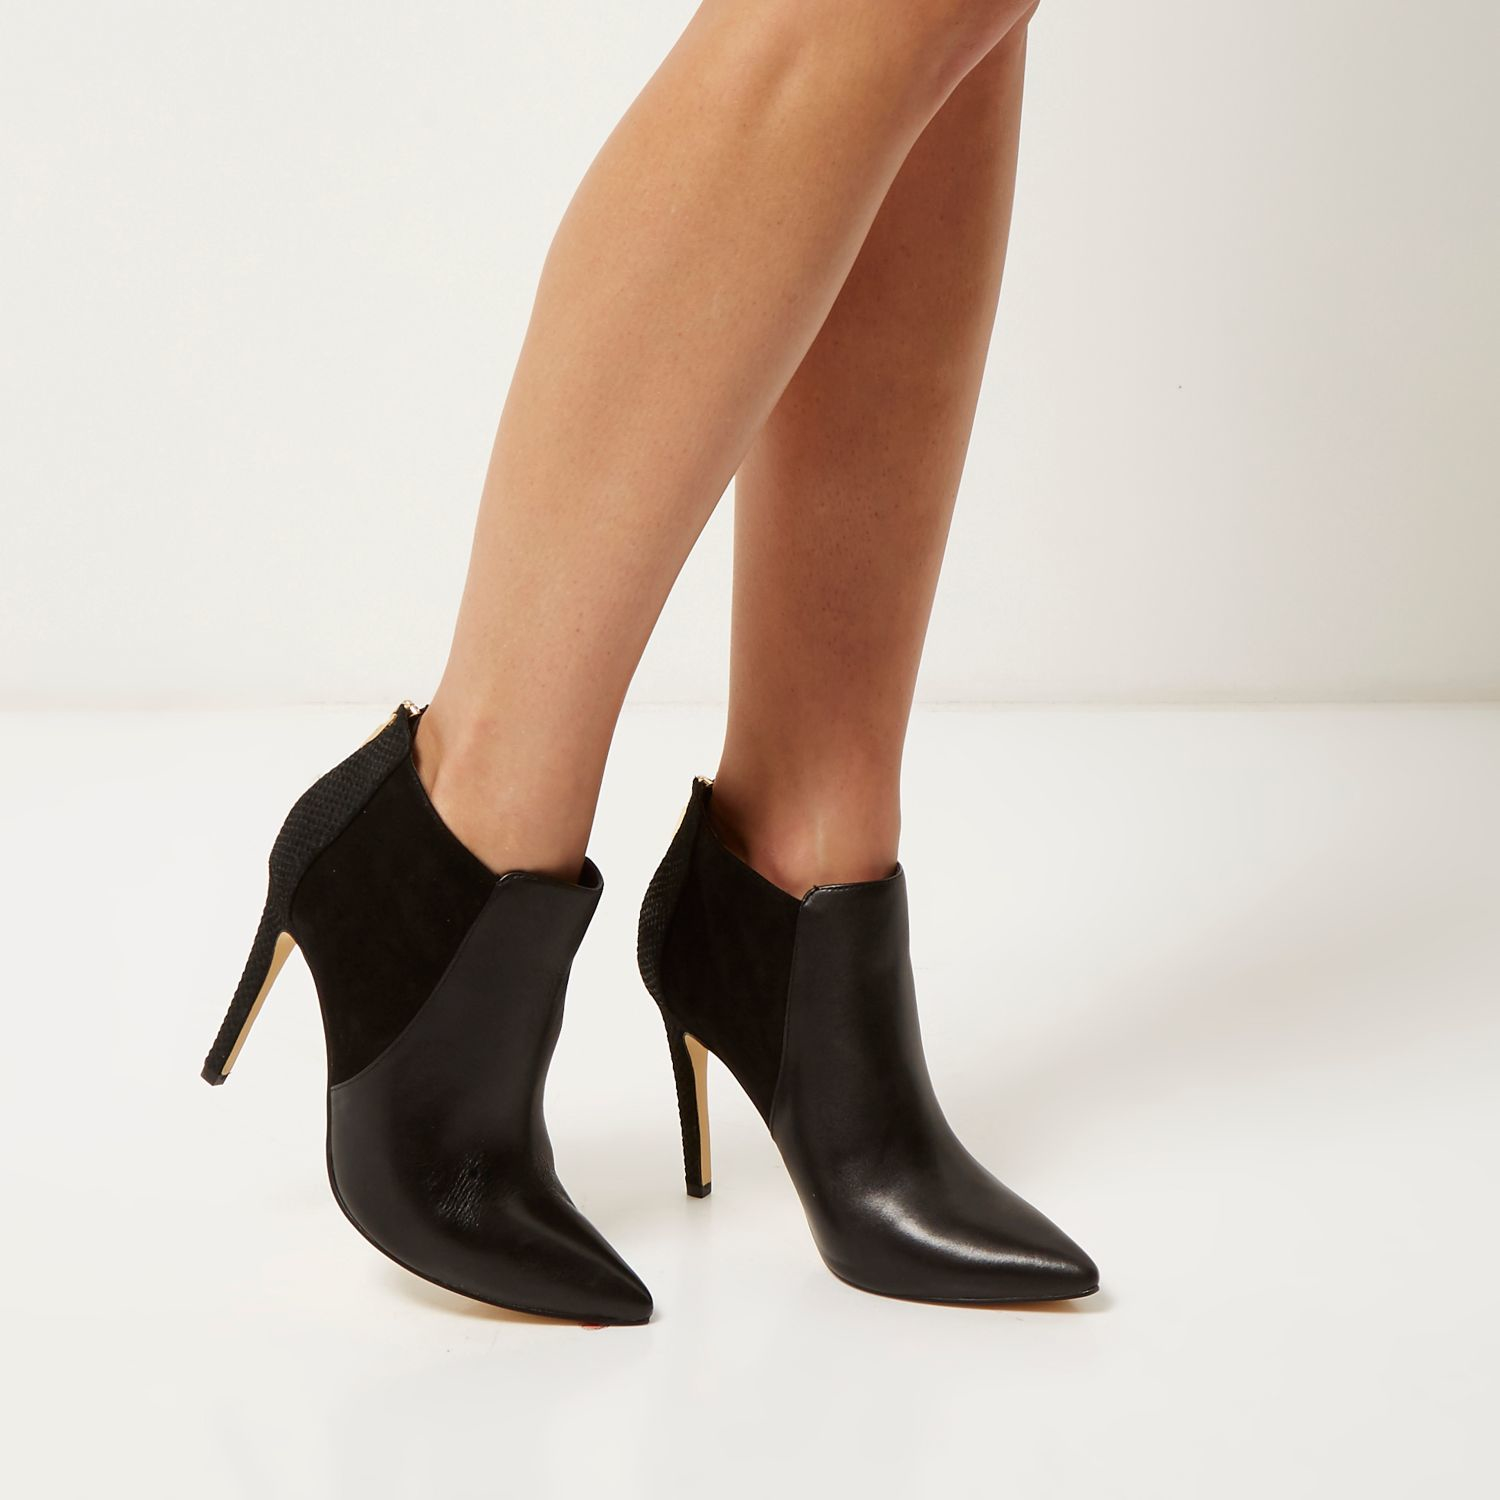 0b8daa2954ee Lyst - River Island Black Leather Pointed Heeled Ankle Boots in Black